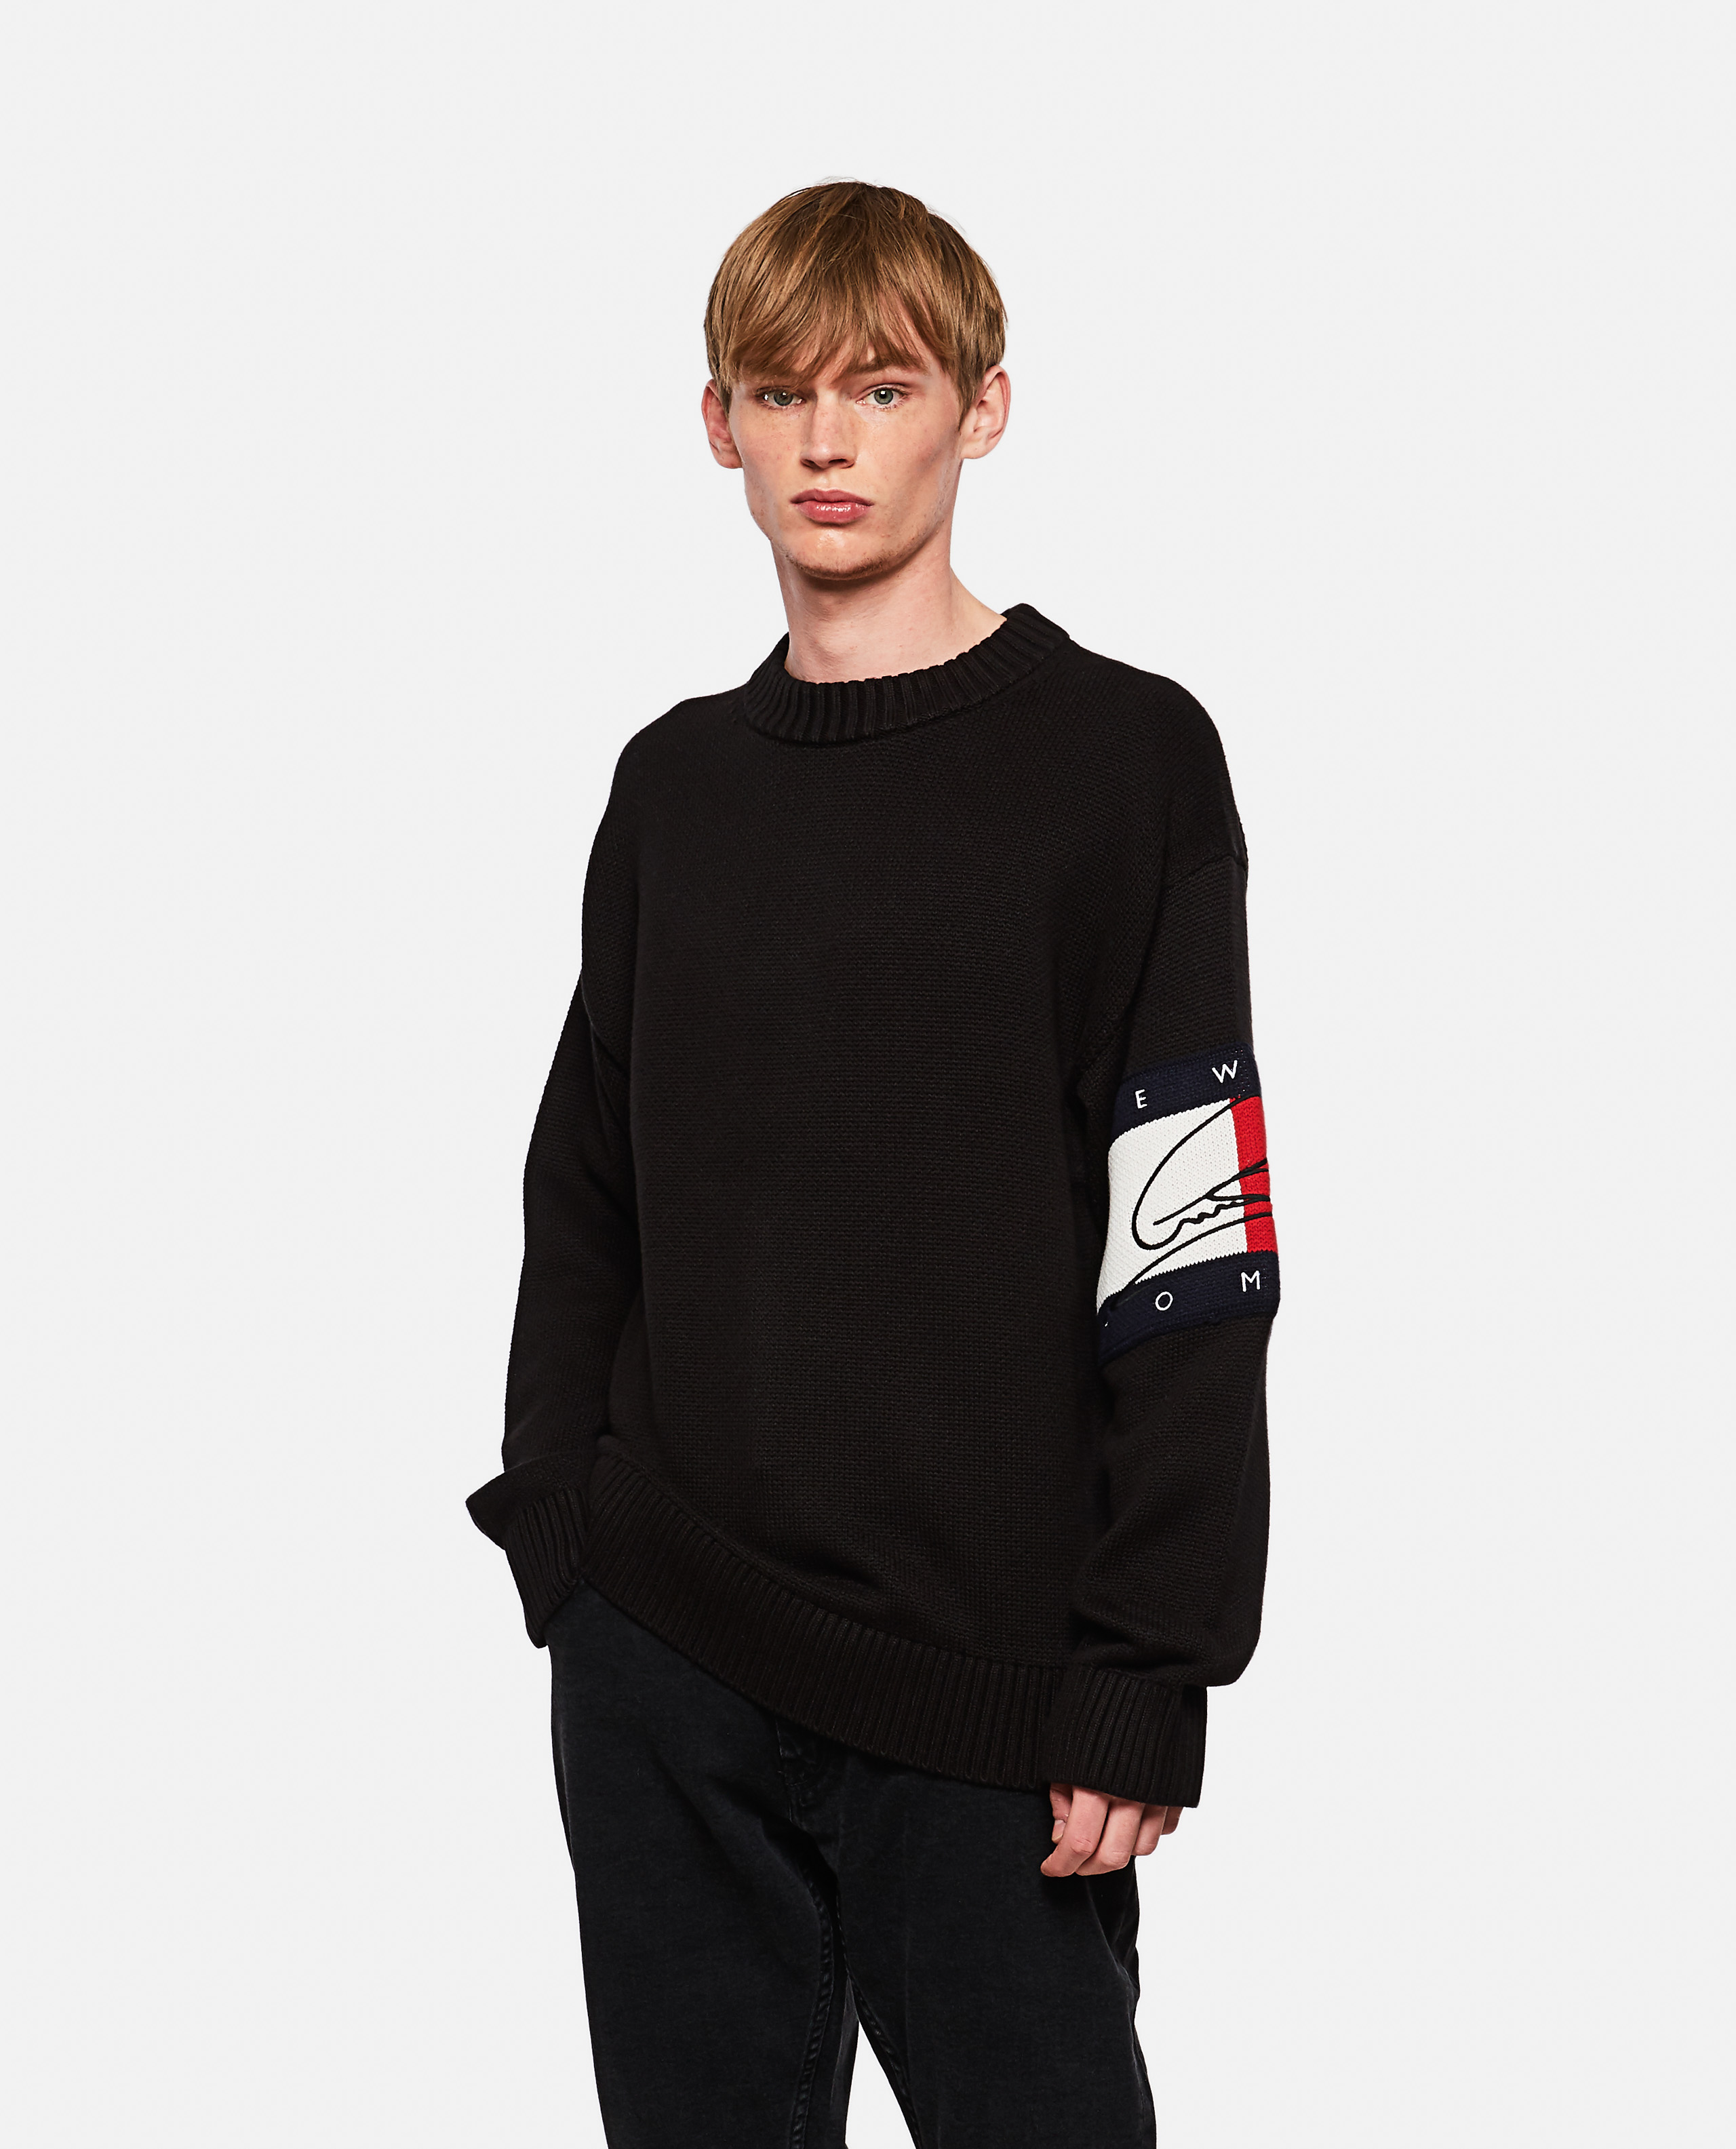 Lewis Hamilton X Tommy Hilfiger sweater